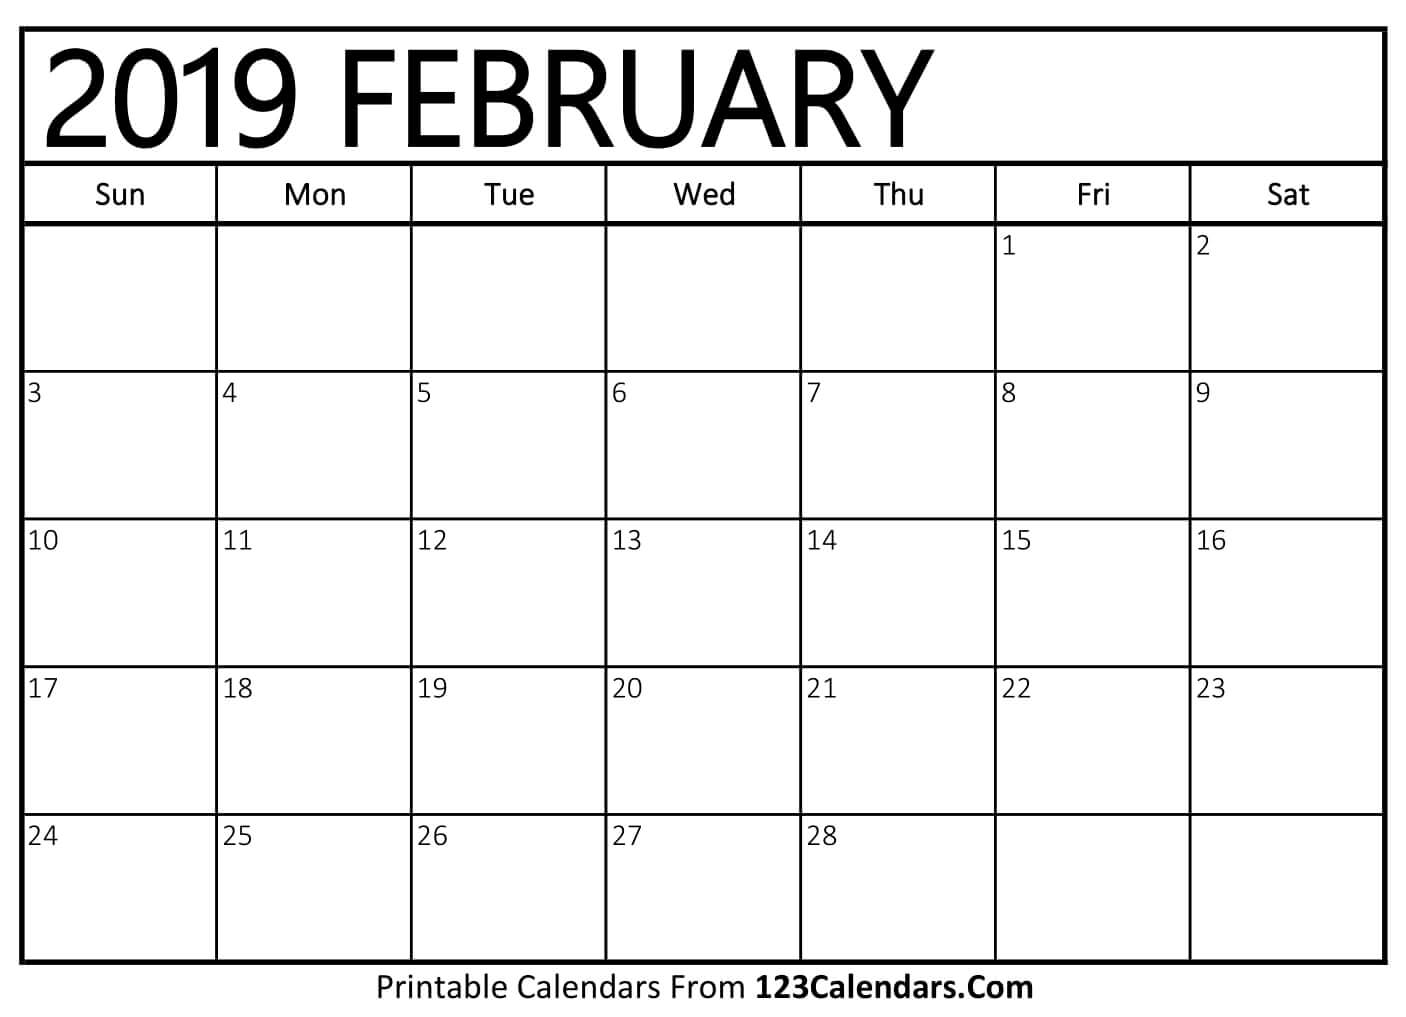 Feb 2019 Calendar Holidays